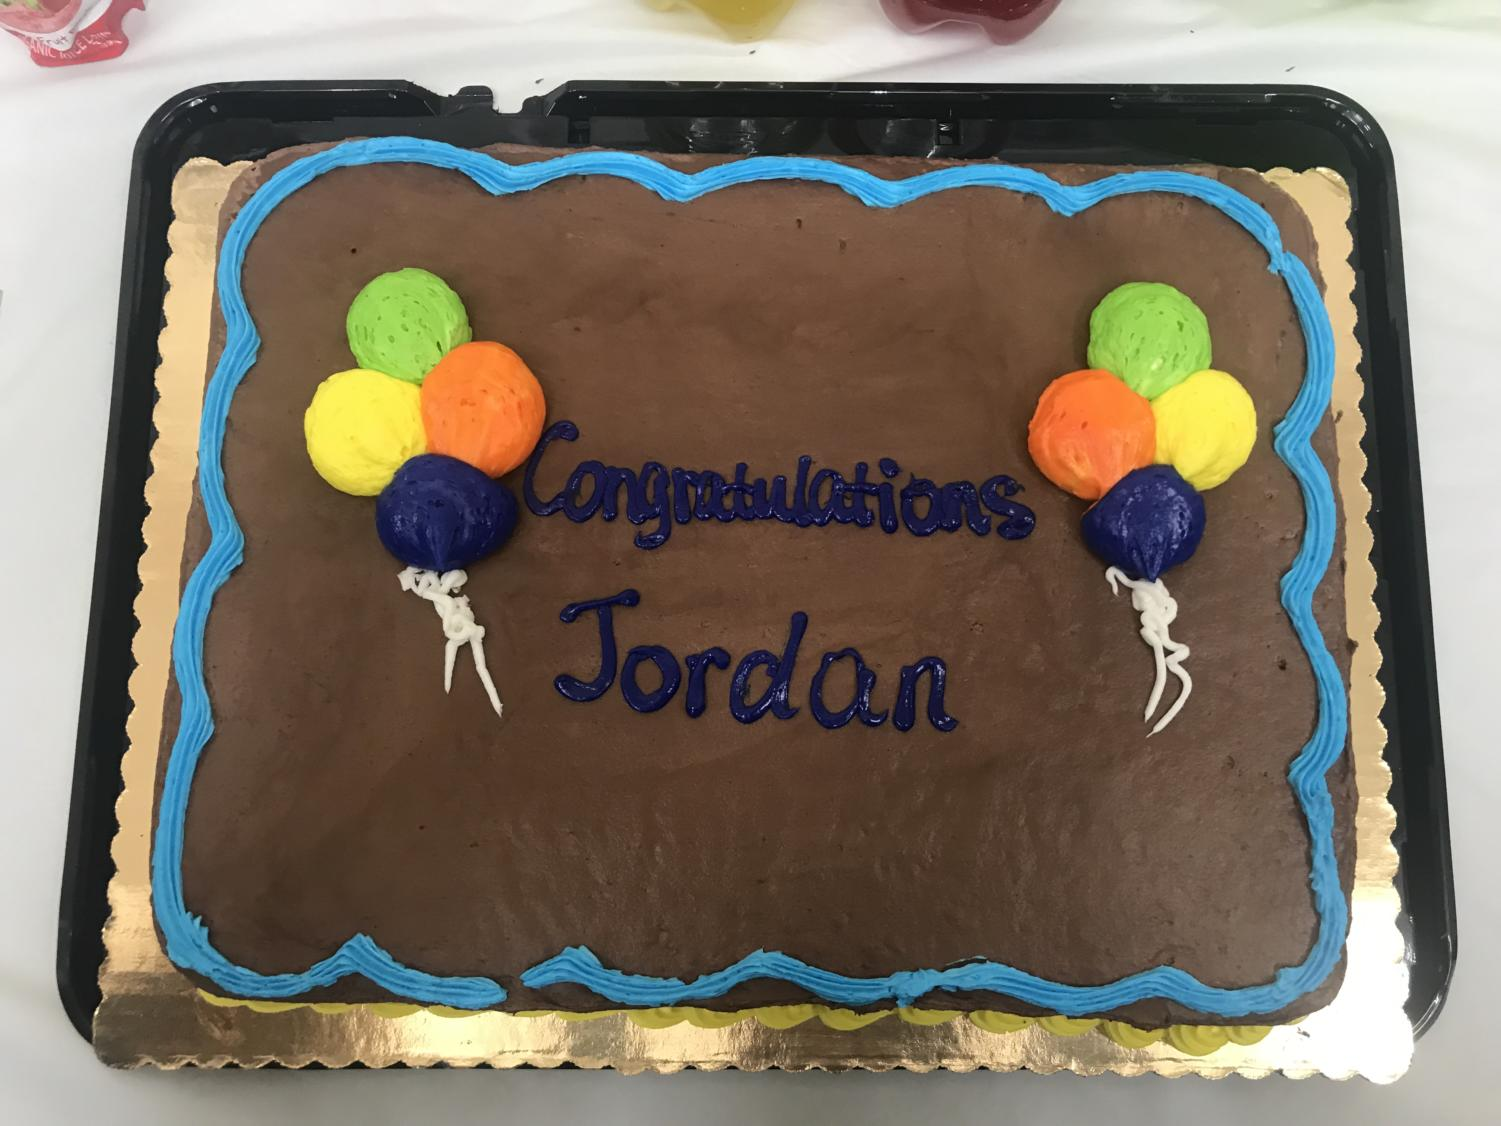 The+library+bought+him+a+cake+that+had+%22Congratulations+Jordan%22+balloons+written+on+it.